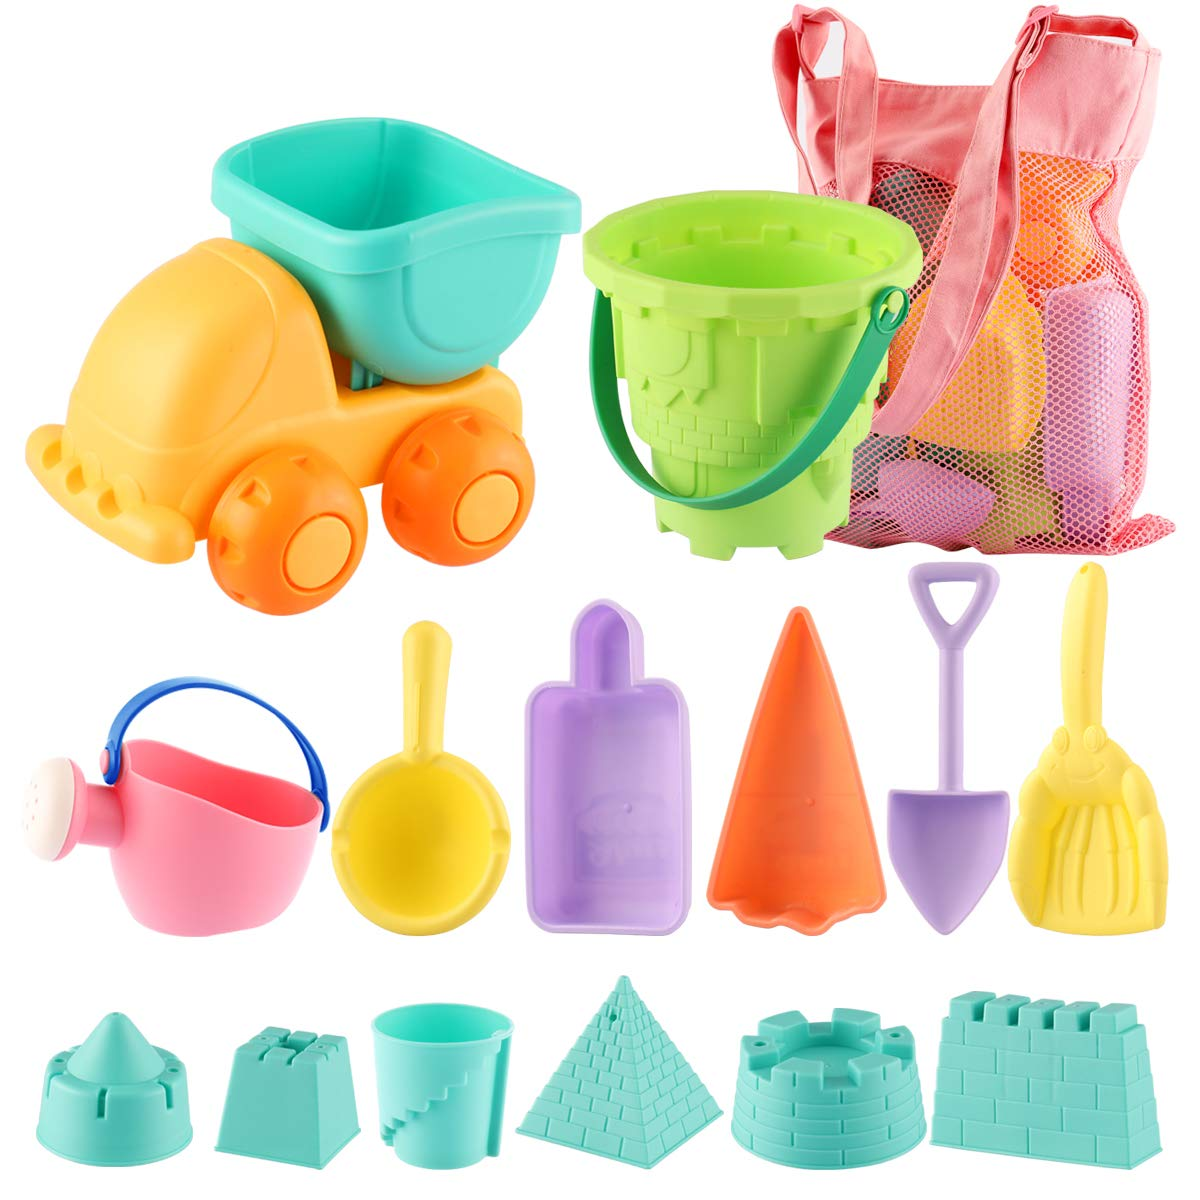 MINGPINHUIUS Kids Beach Toys Toddlers Beach Sand Toy Set with Bucket Castle Molds and Mesh Bag Soft Plastic Material (14 pcs) by MINGPINHUIUS